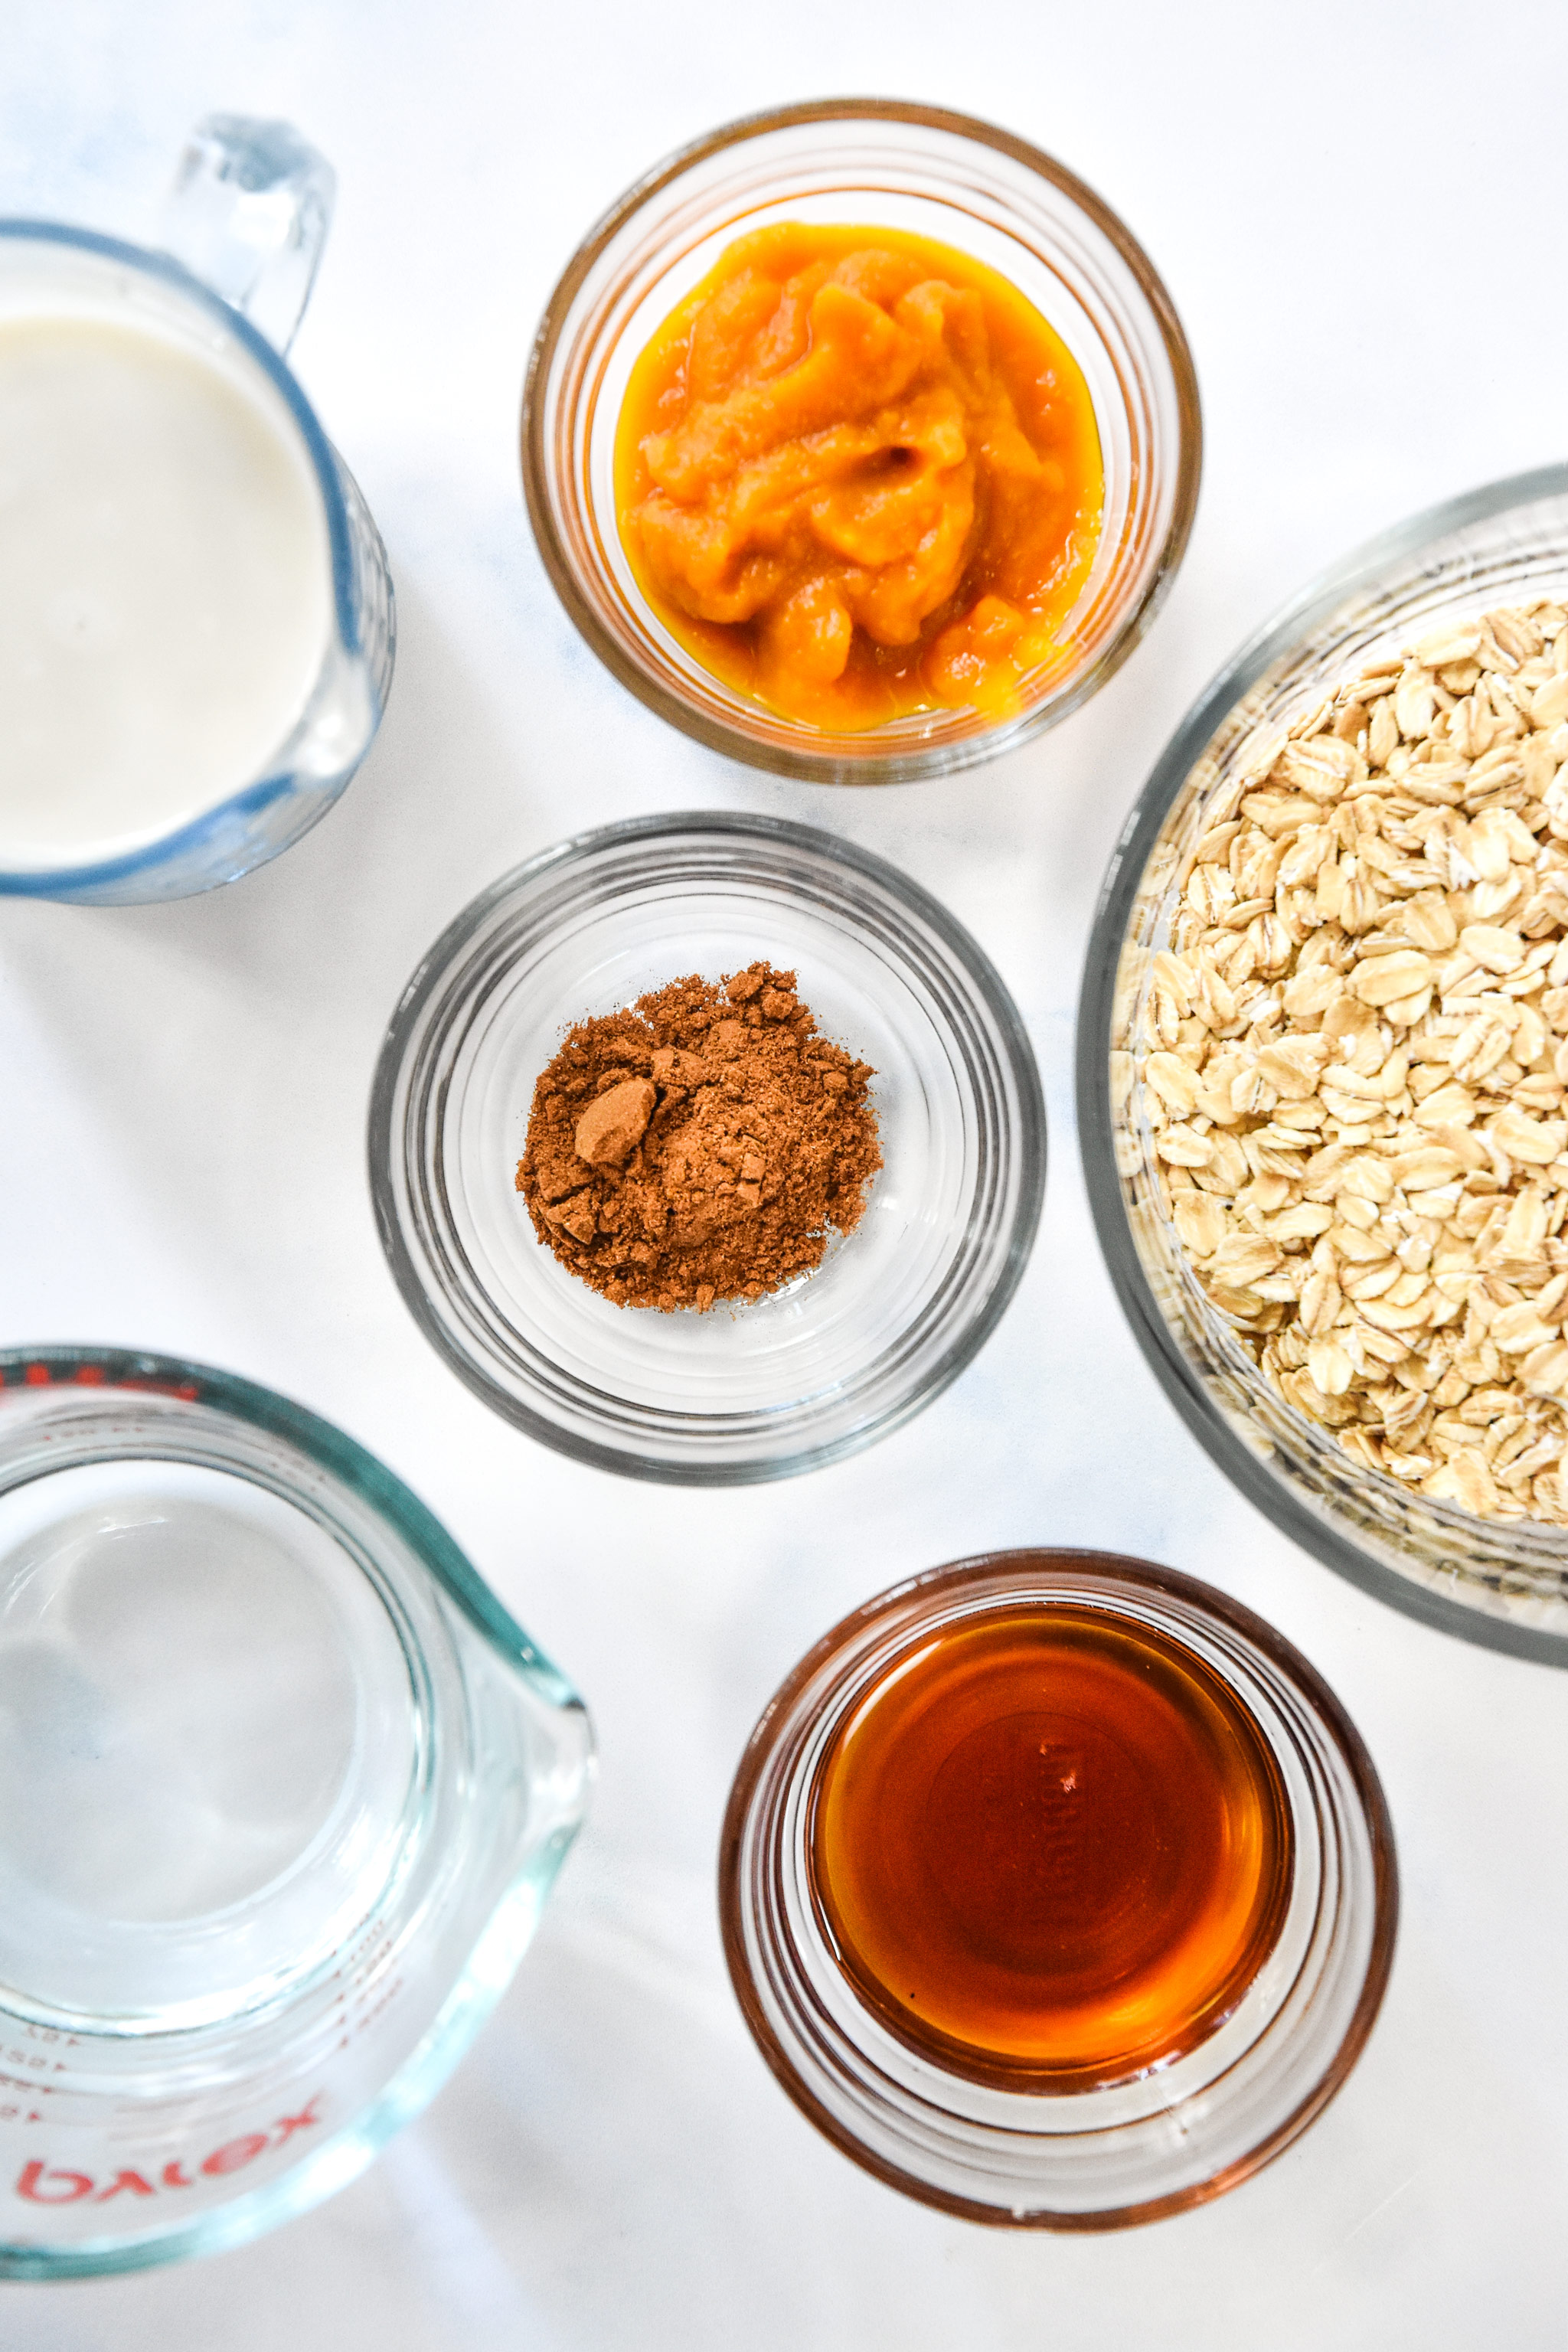 ingredients for the oatmeal including oats, pumpkin puree, and maple syrup.